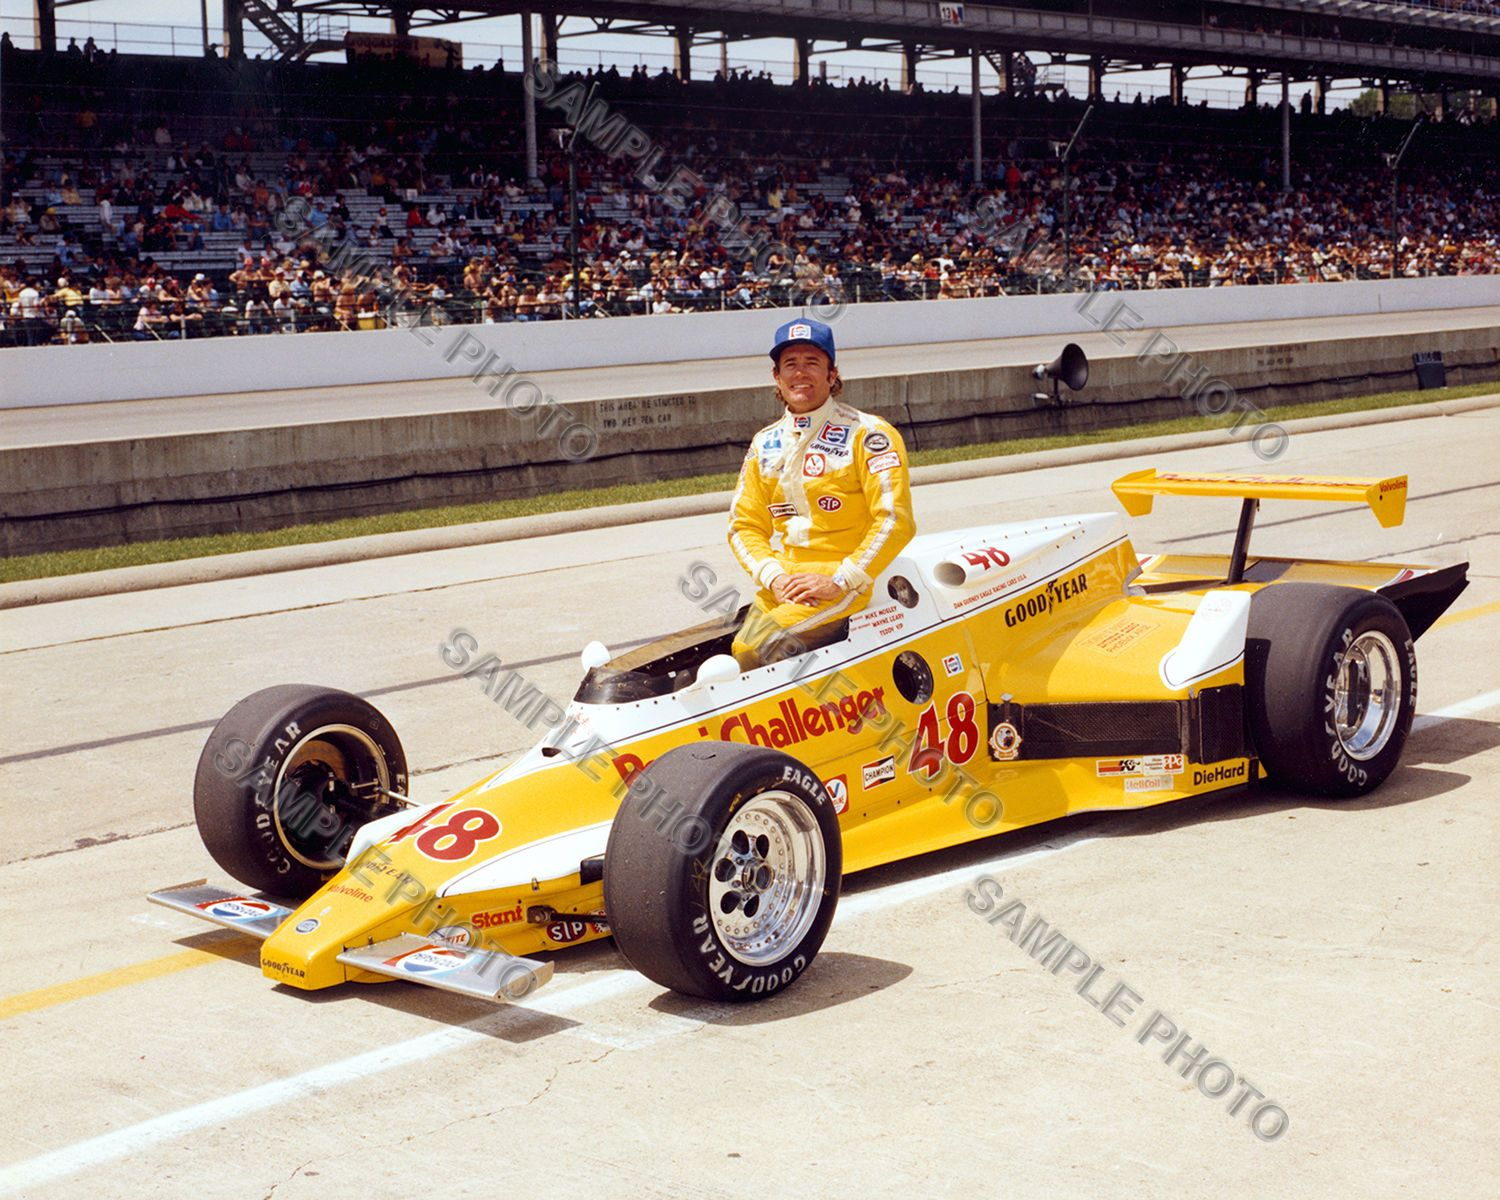 3 95 mike mosley 1981 indy 500 auto racing 8x10 photo ebay collectibles